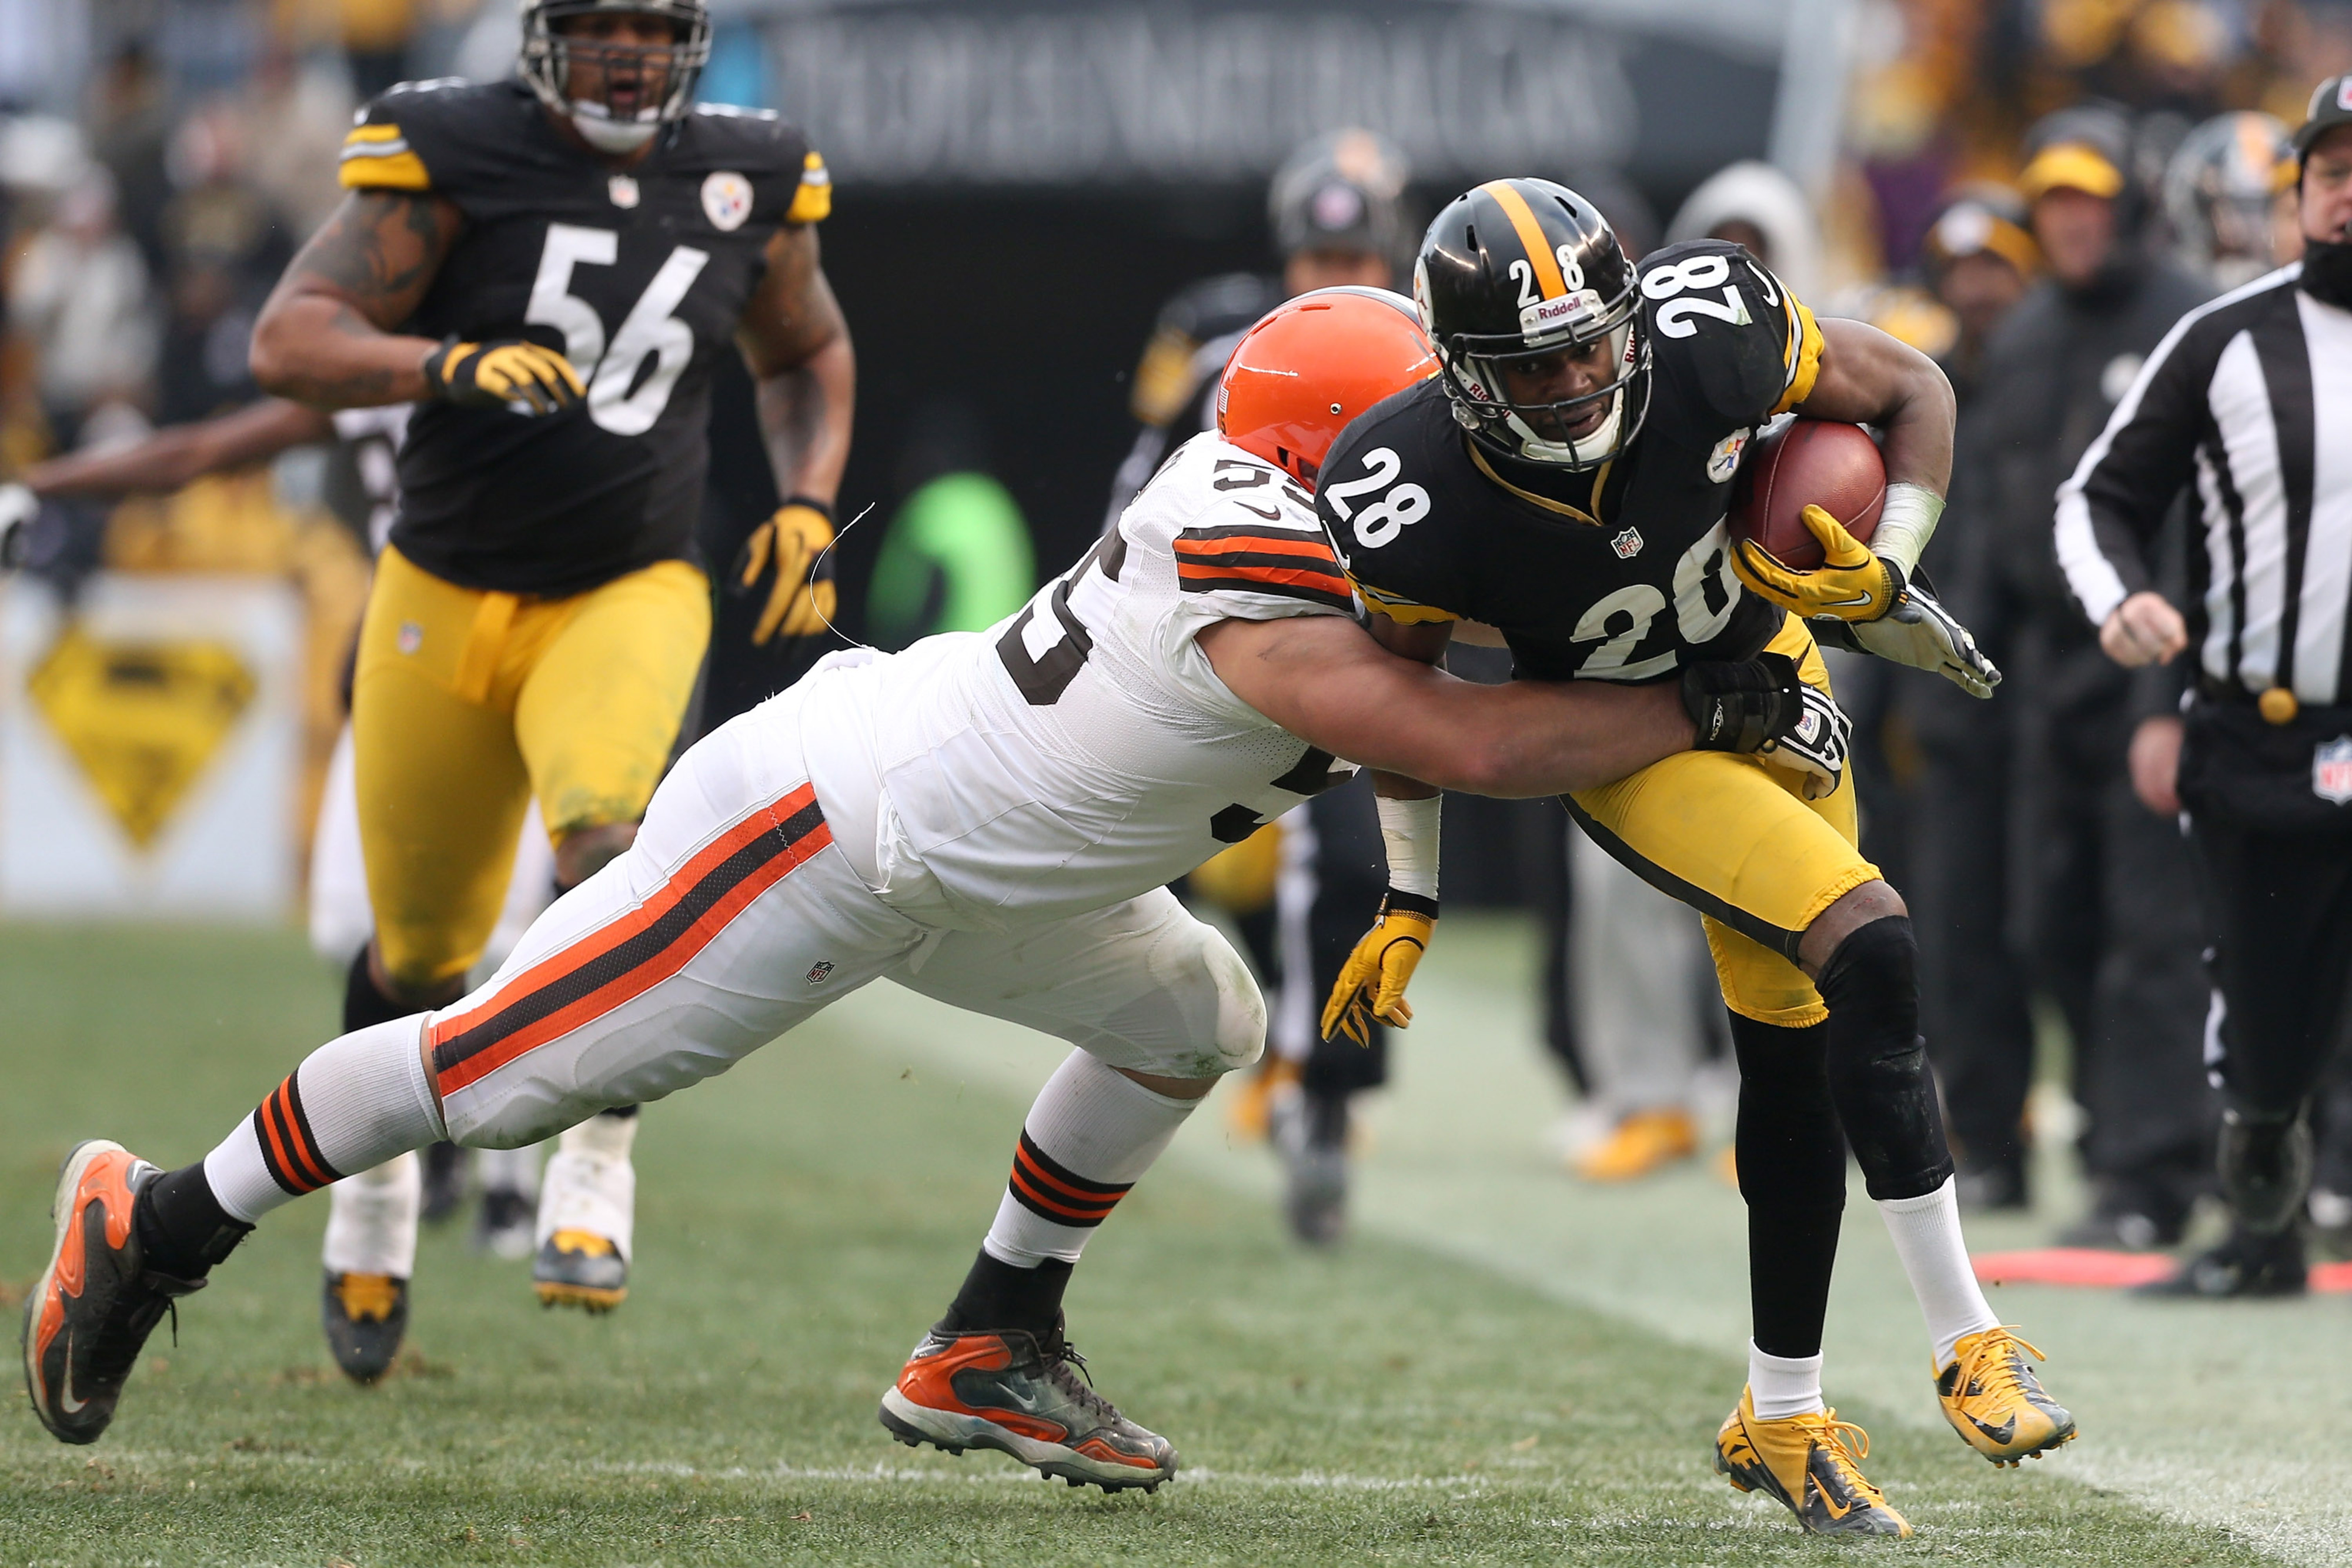 """Cortez Allen almost had an interception vs. Cleveland, in a game filled with """"almosts."""""""